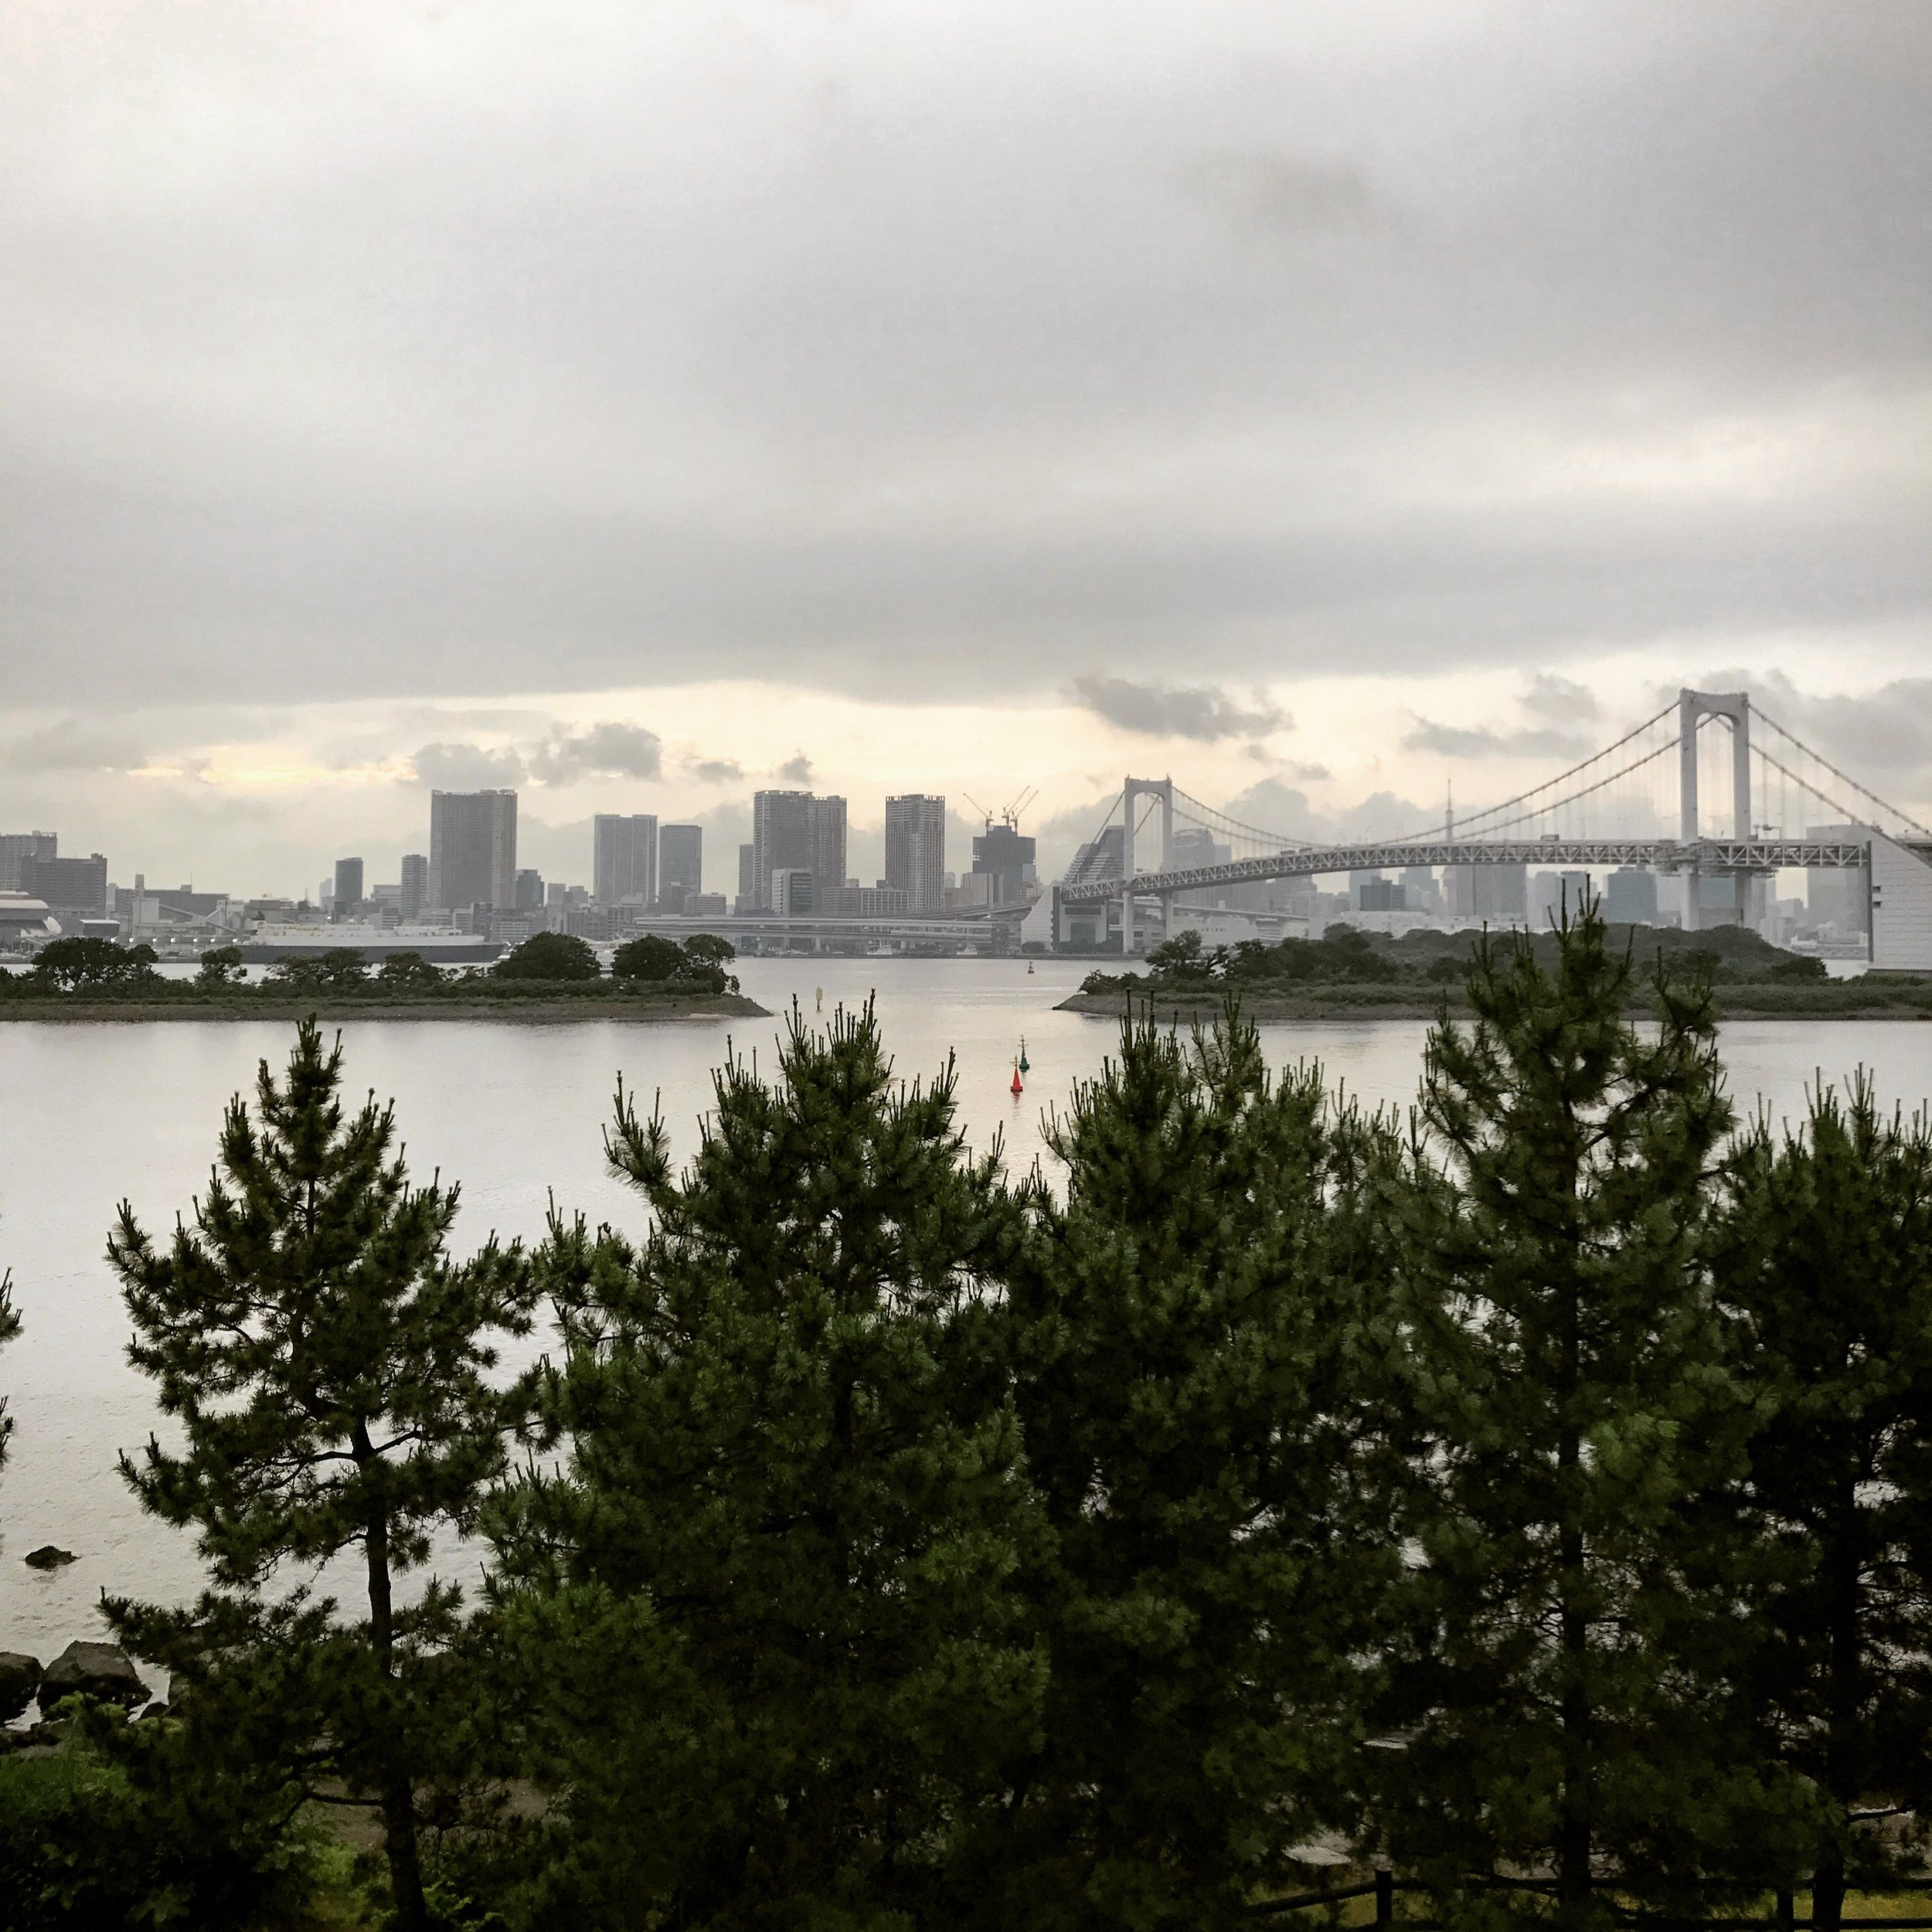 The Rainbow Bridge from Odaiba, Tokyo Bay, Japan